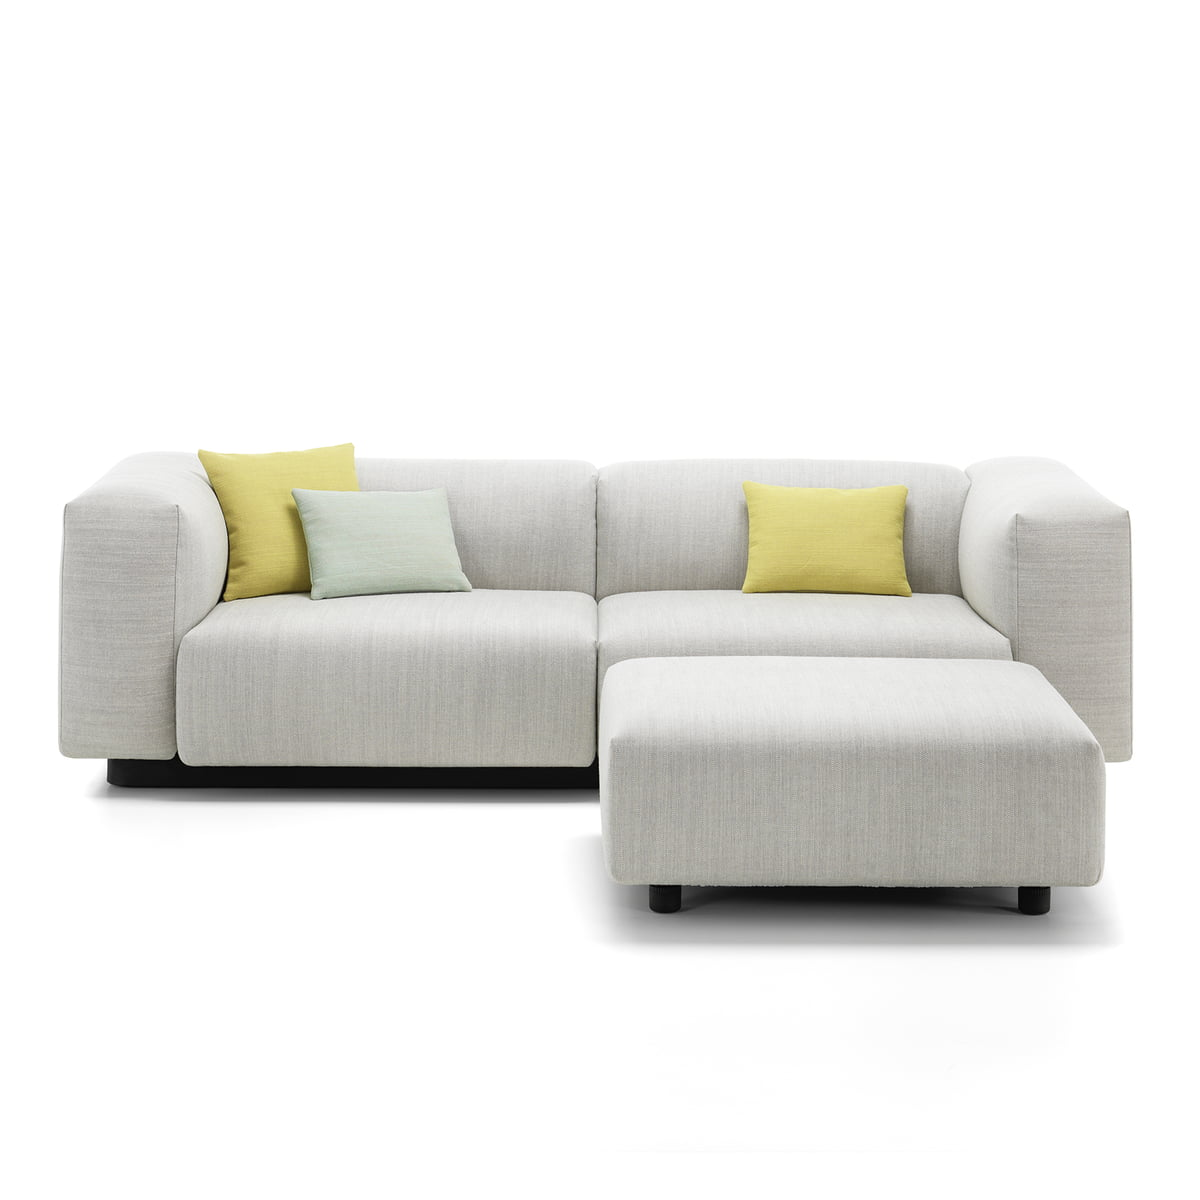 Modular Sofa Soft Modular 2 Seater Sofa From Vitra In The Connox Shop